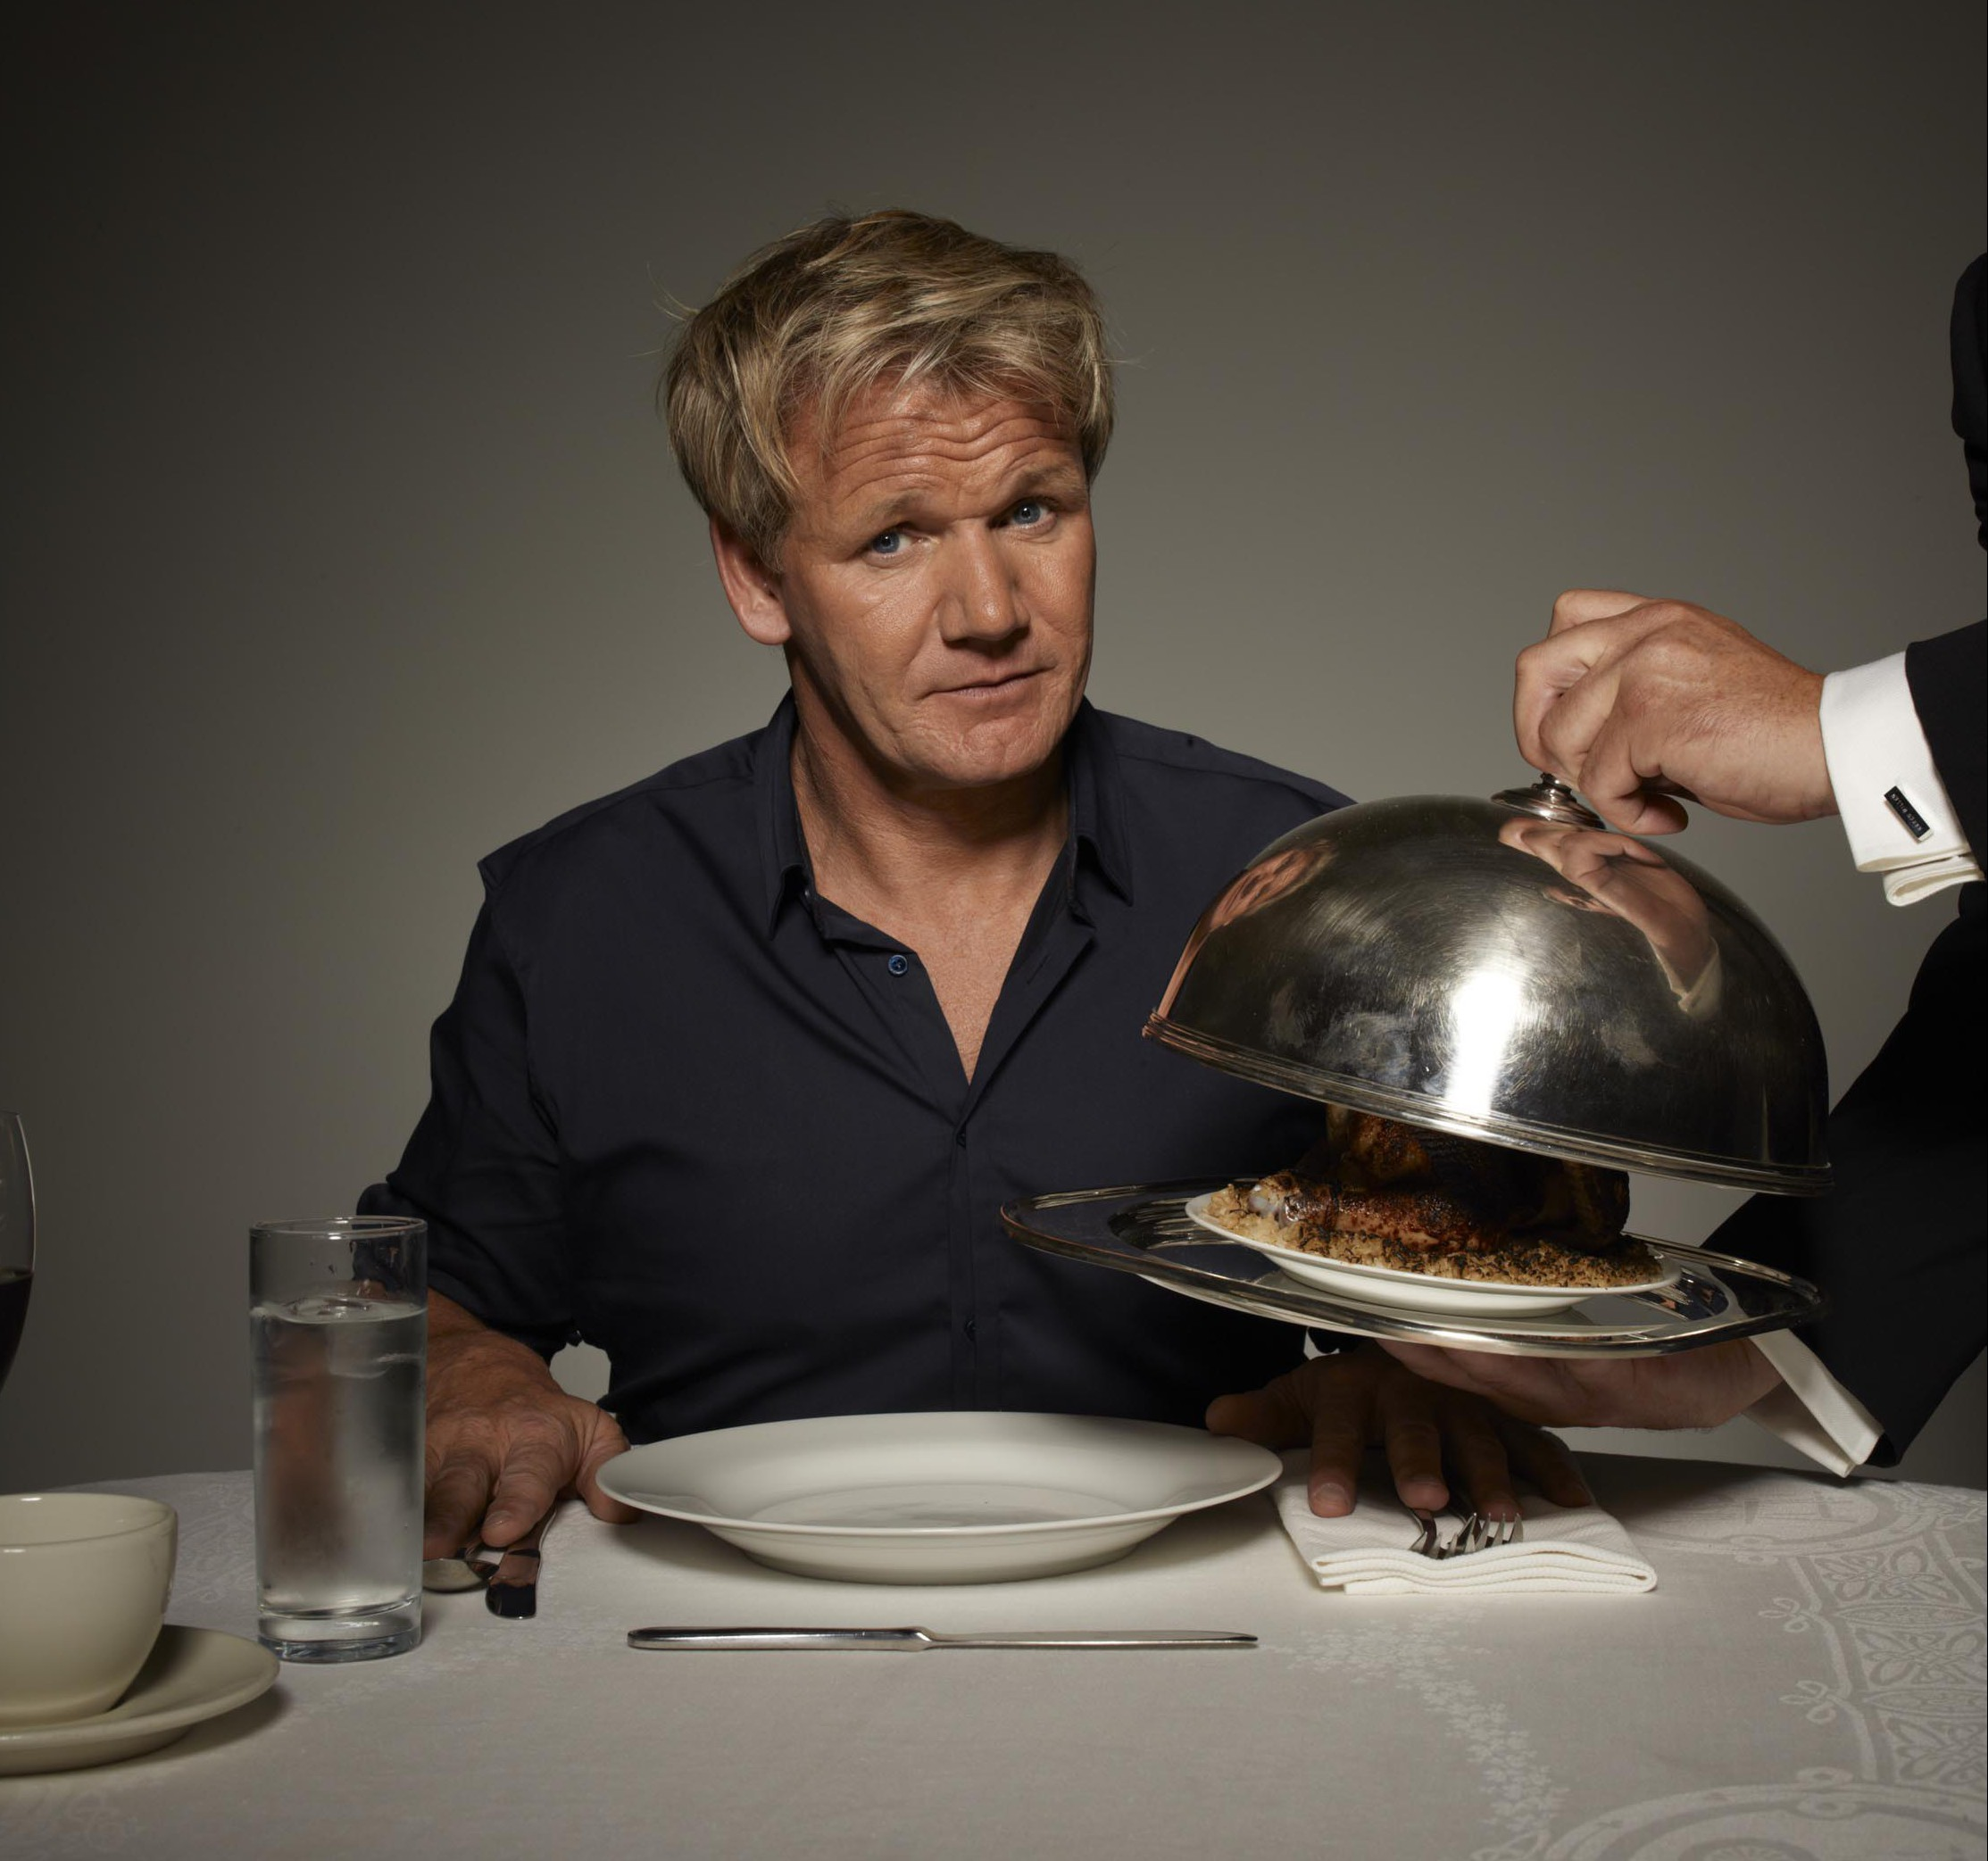 WHAT?! Kitchen Nightmares to end after 10 years as Gordon Ramsay decides to quit the show